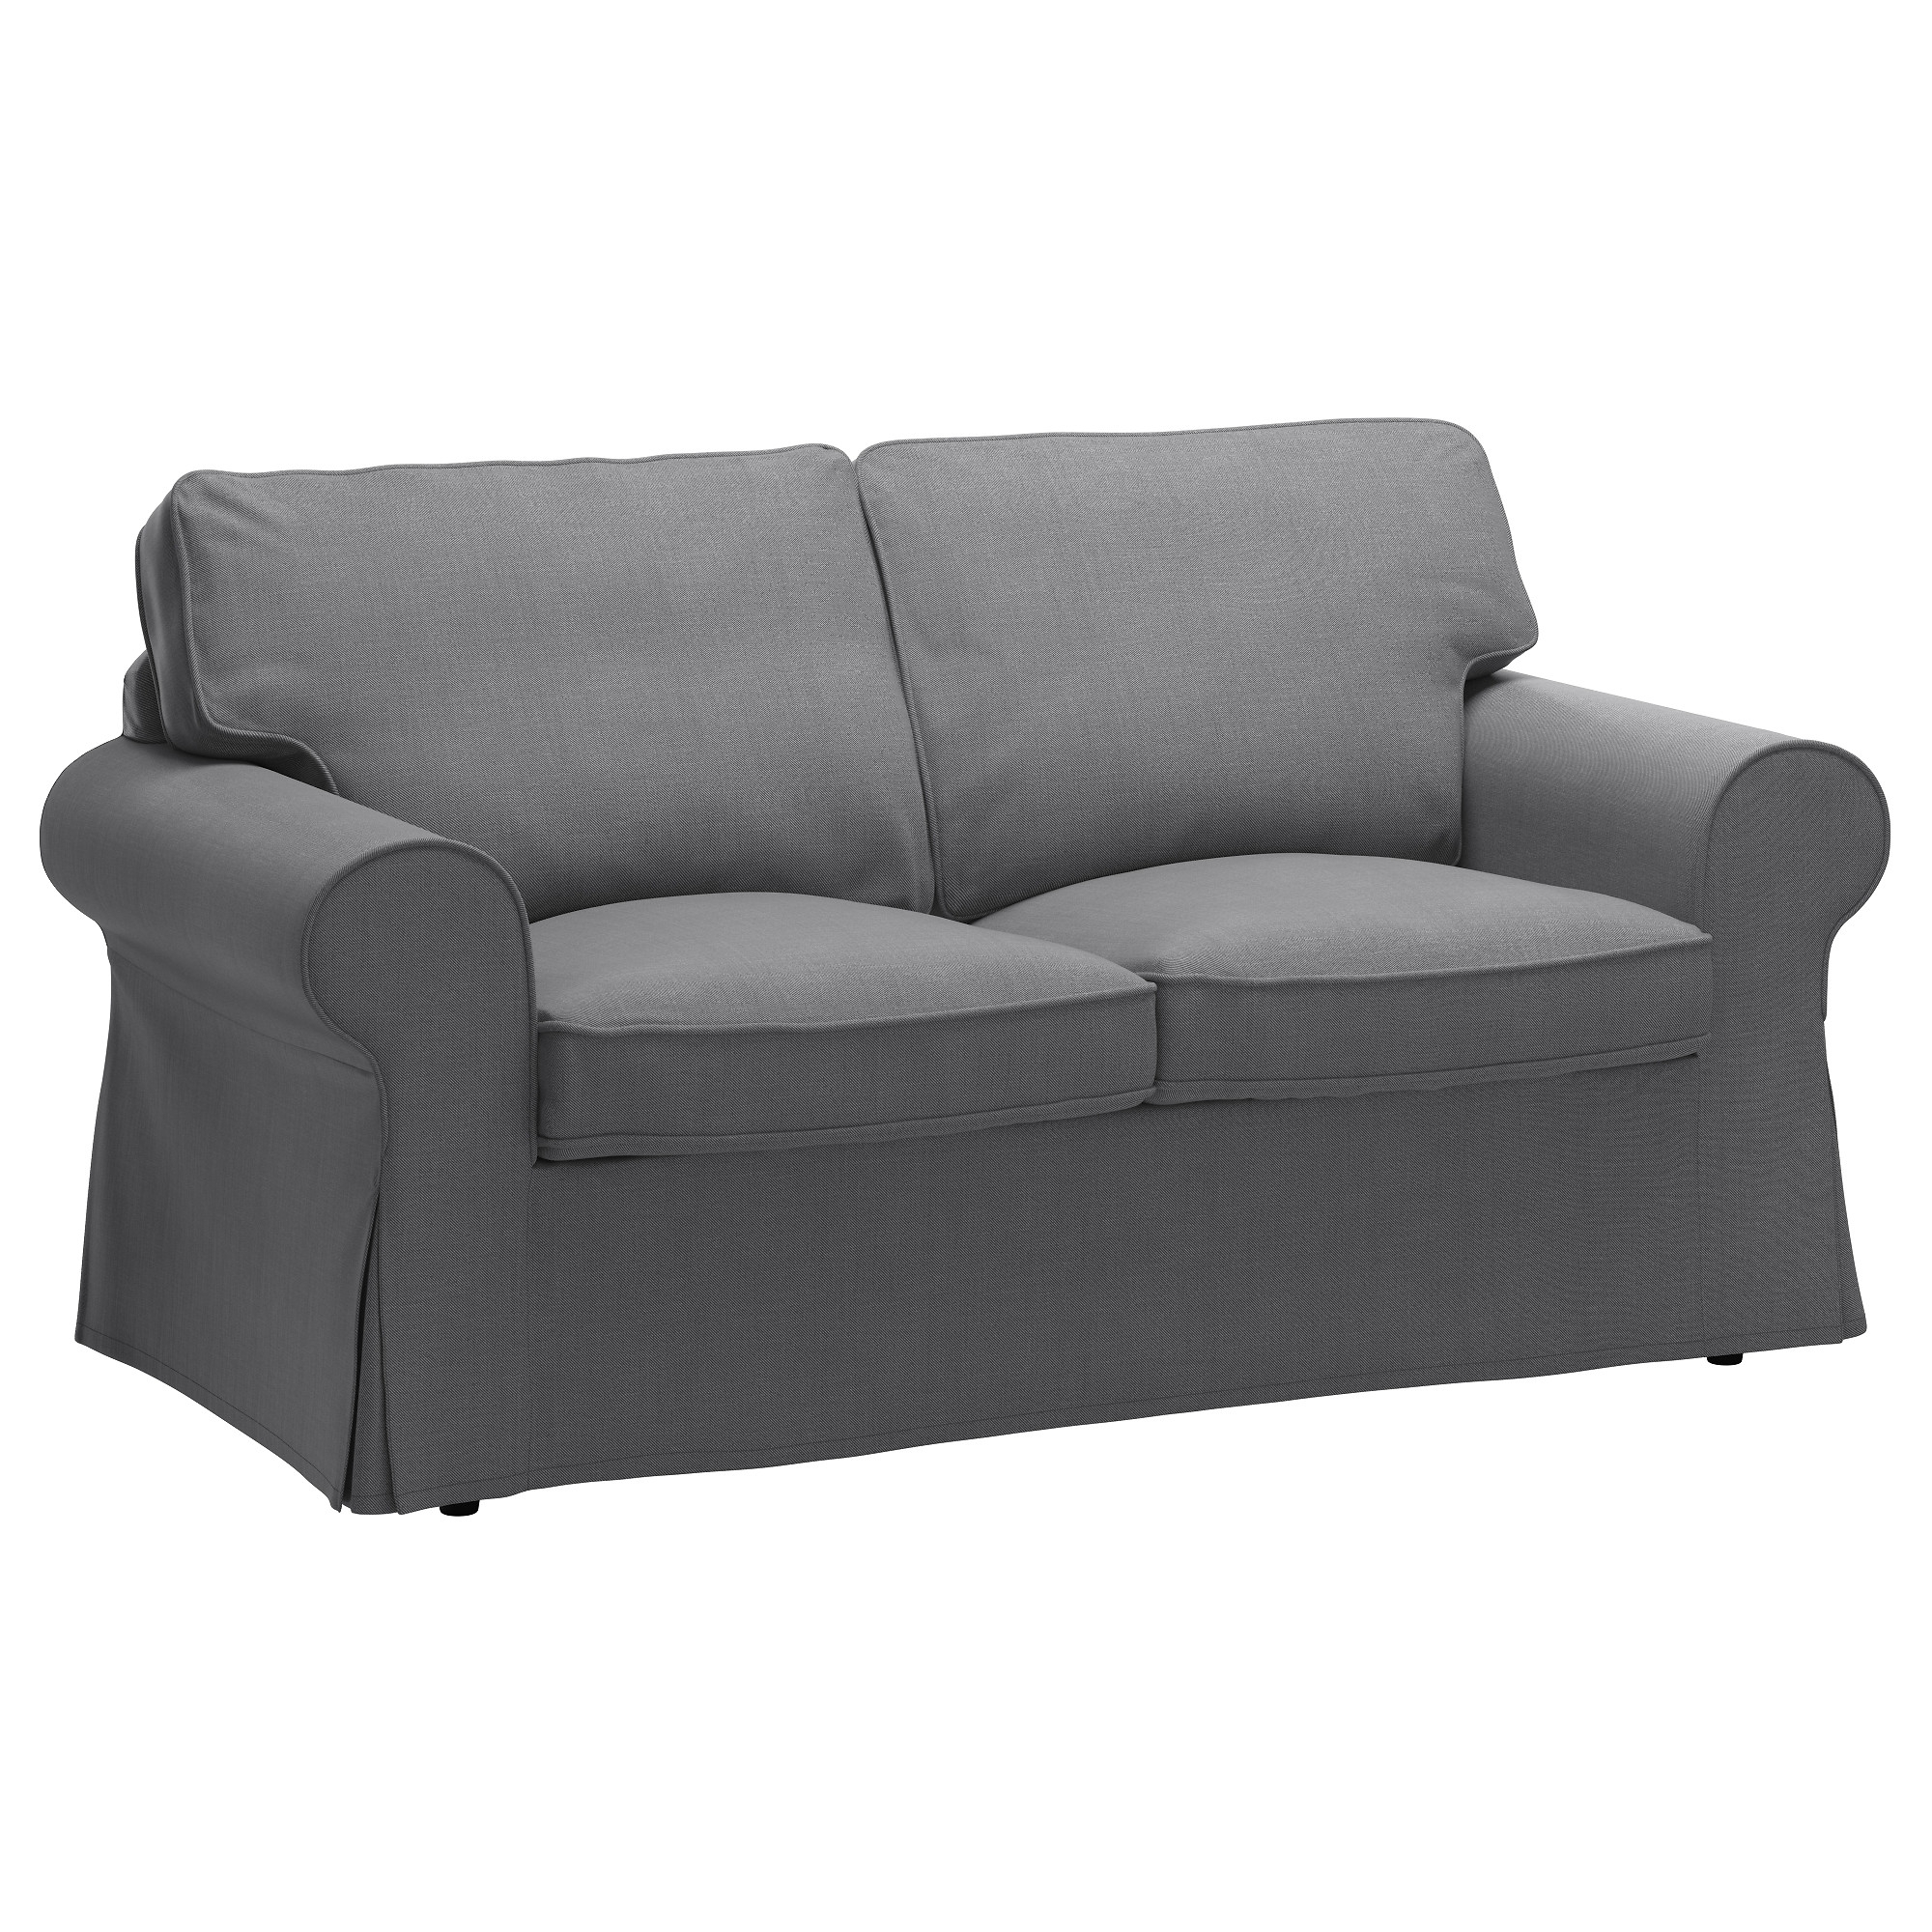 Favorite Ektorp Two Seat Sofa – Lofallet Beige – Ikea Within 2 Seater Sofas (View 10 of 20)